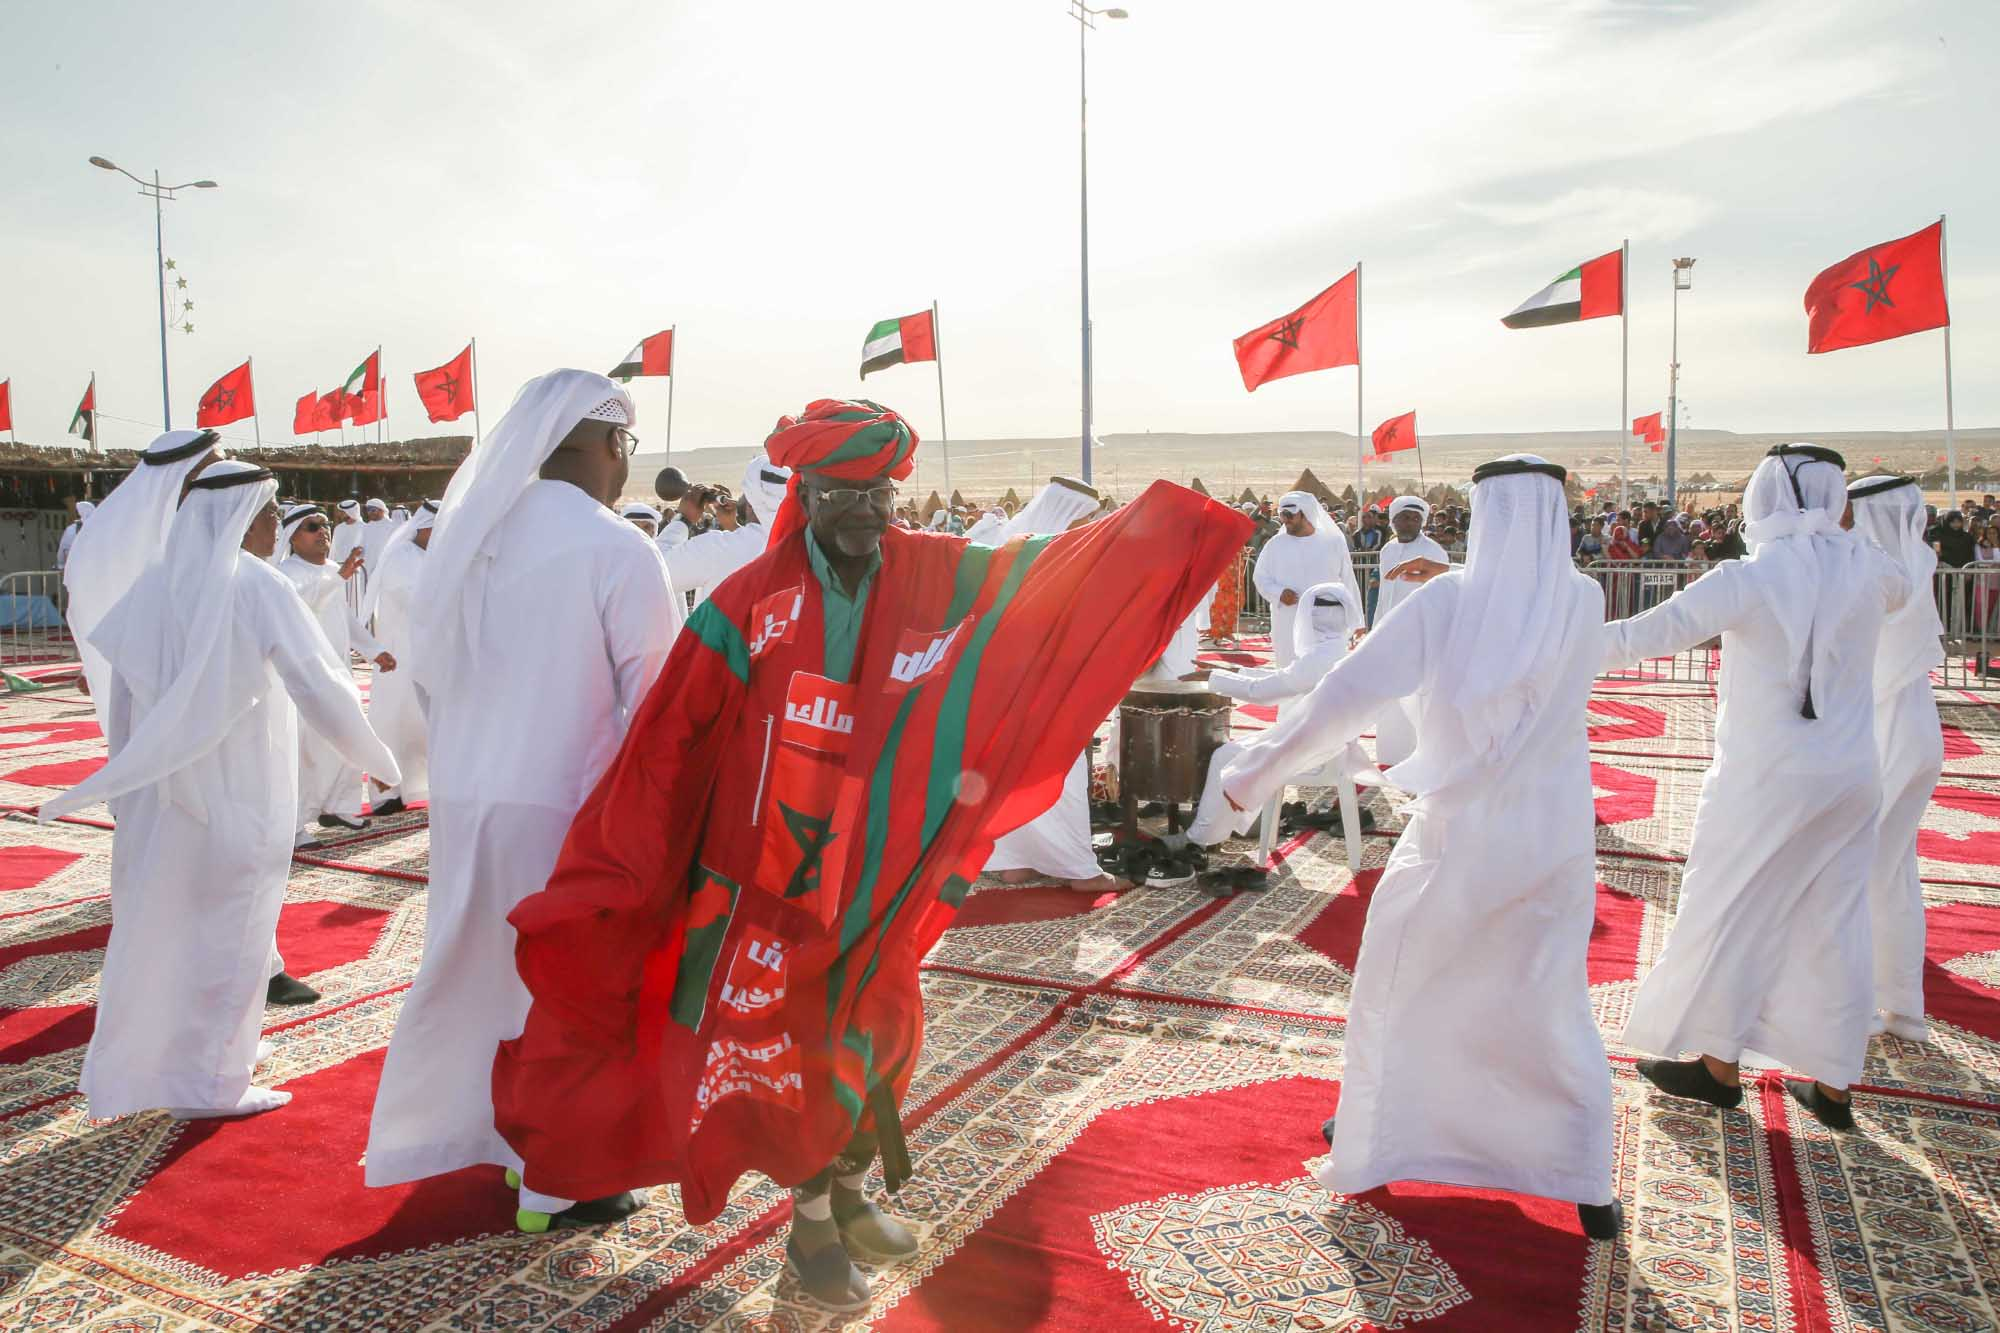 emirati heritage in african sahara as the uae participates in morocco's tan tan moussem festival3